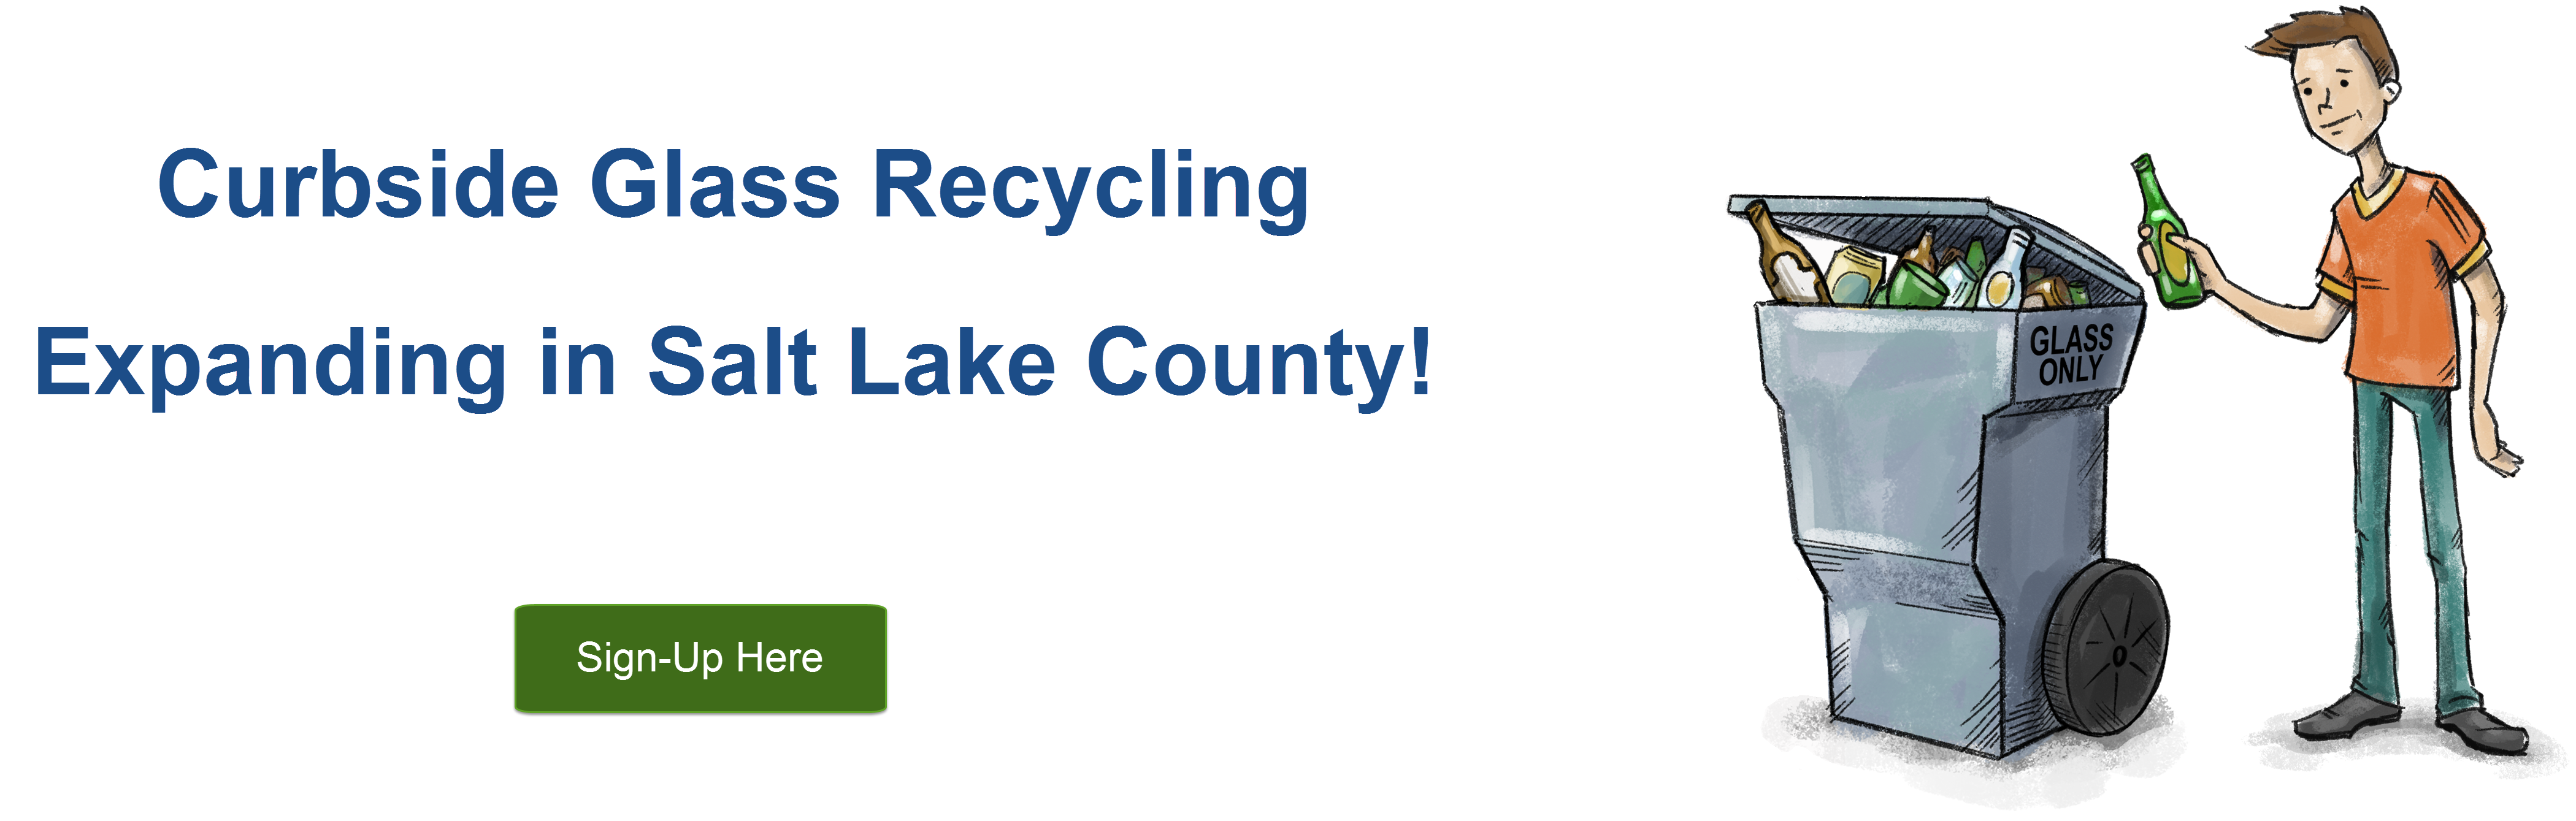 Salt Lake County Glass Recycling Program